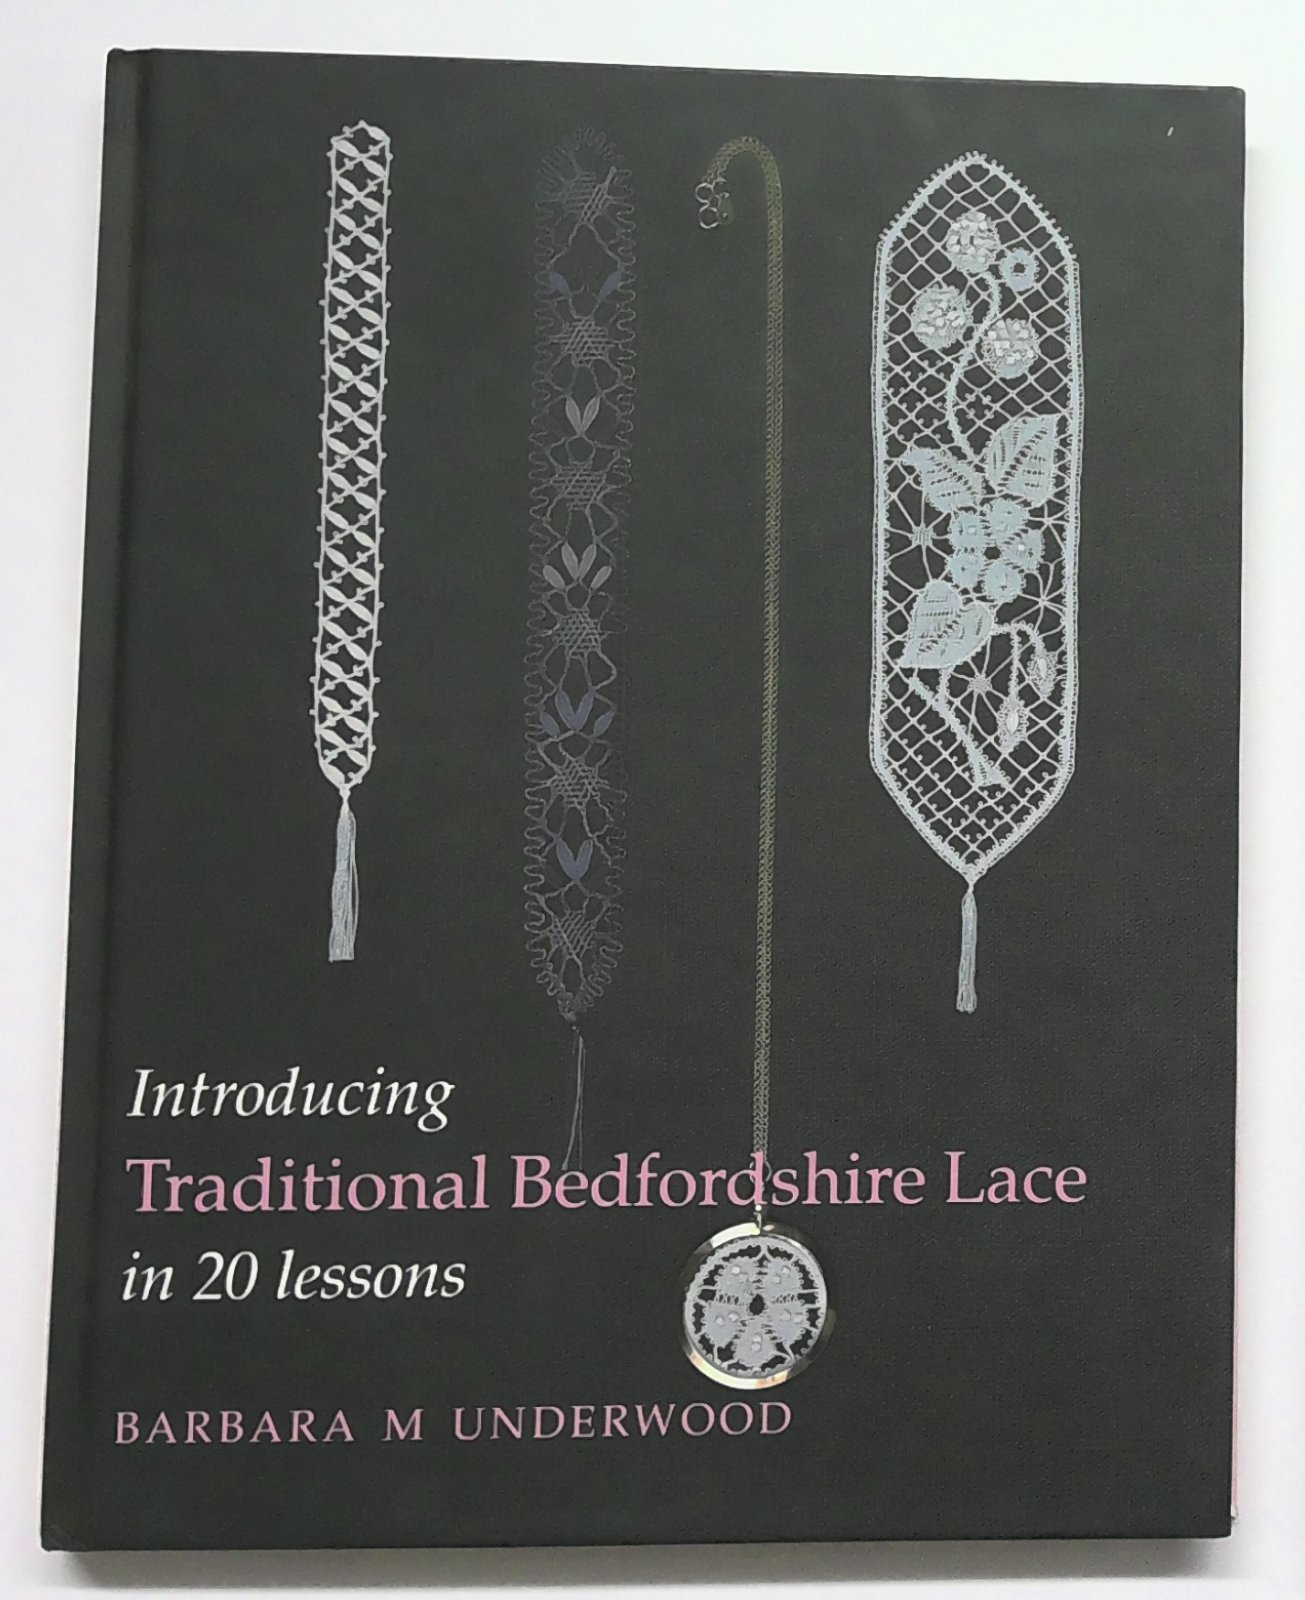 Introducing Traditional Bedfordshire Lace